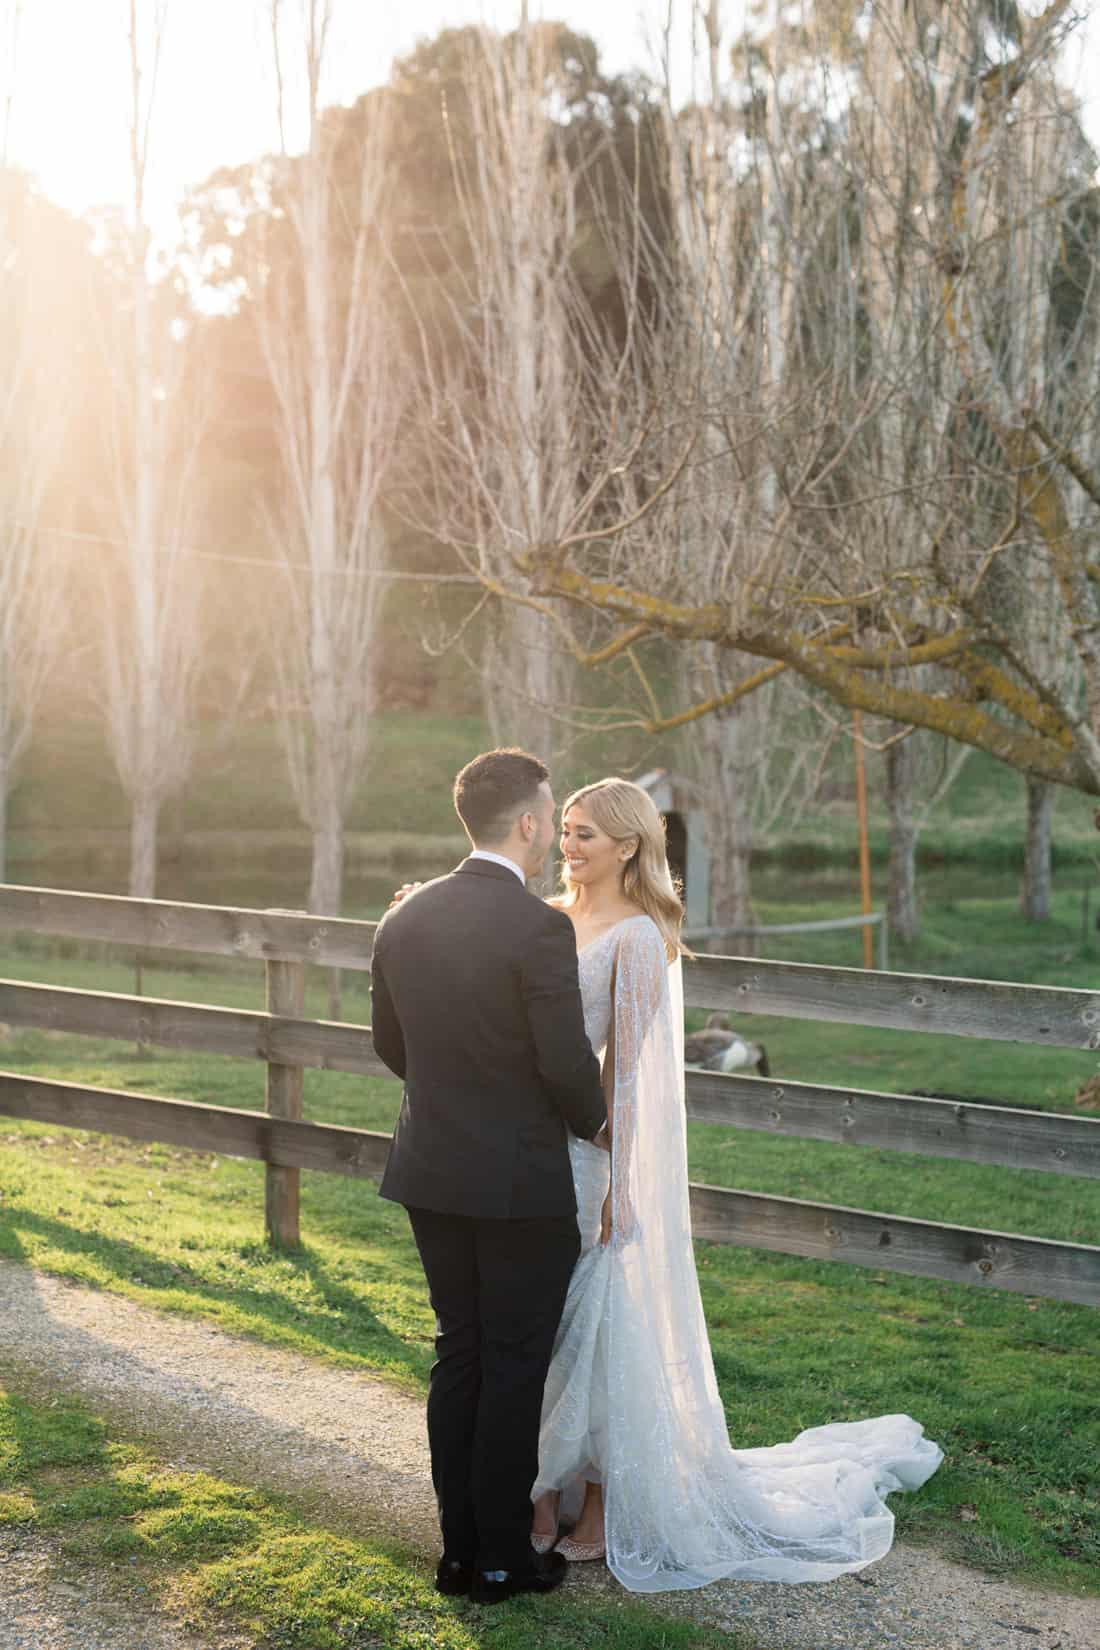 Wes Beelders - Adelaide wedding photographer